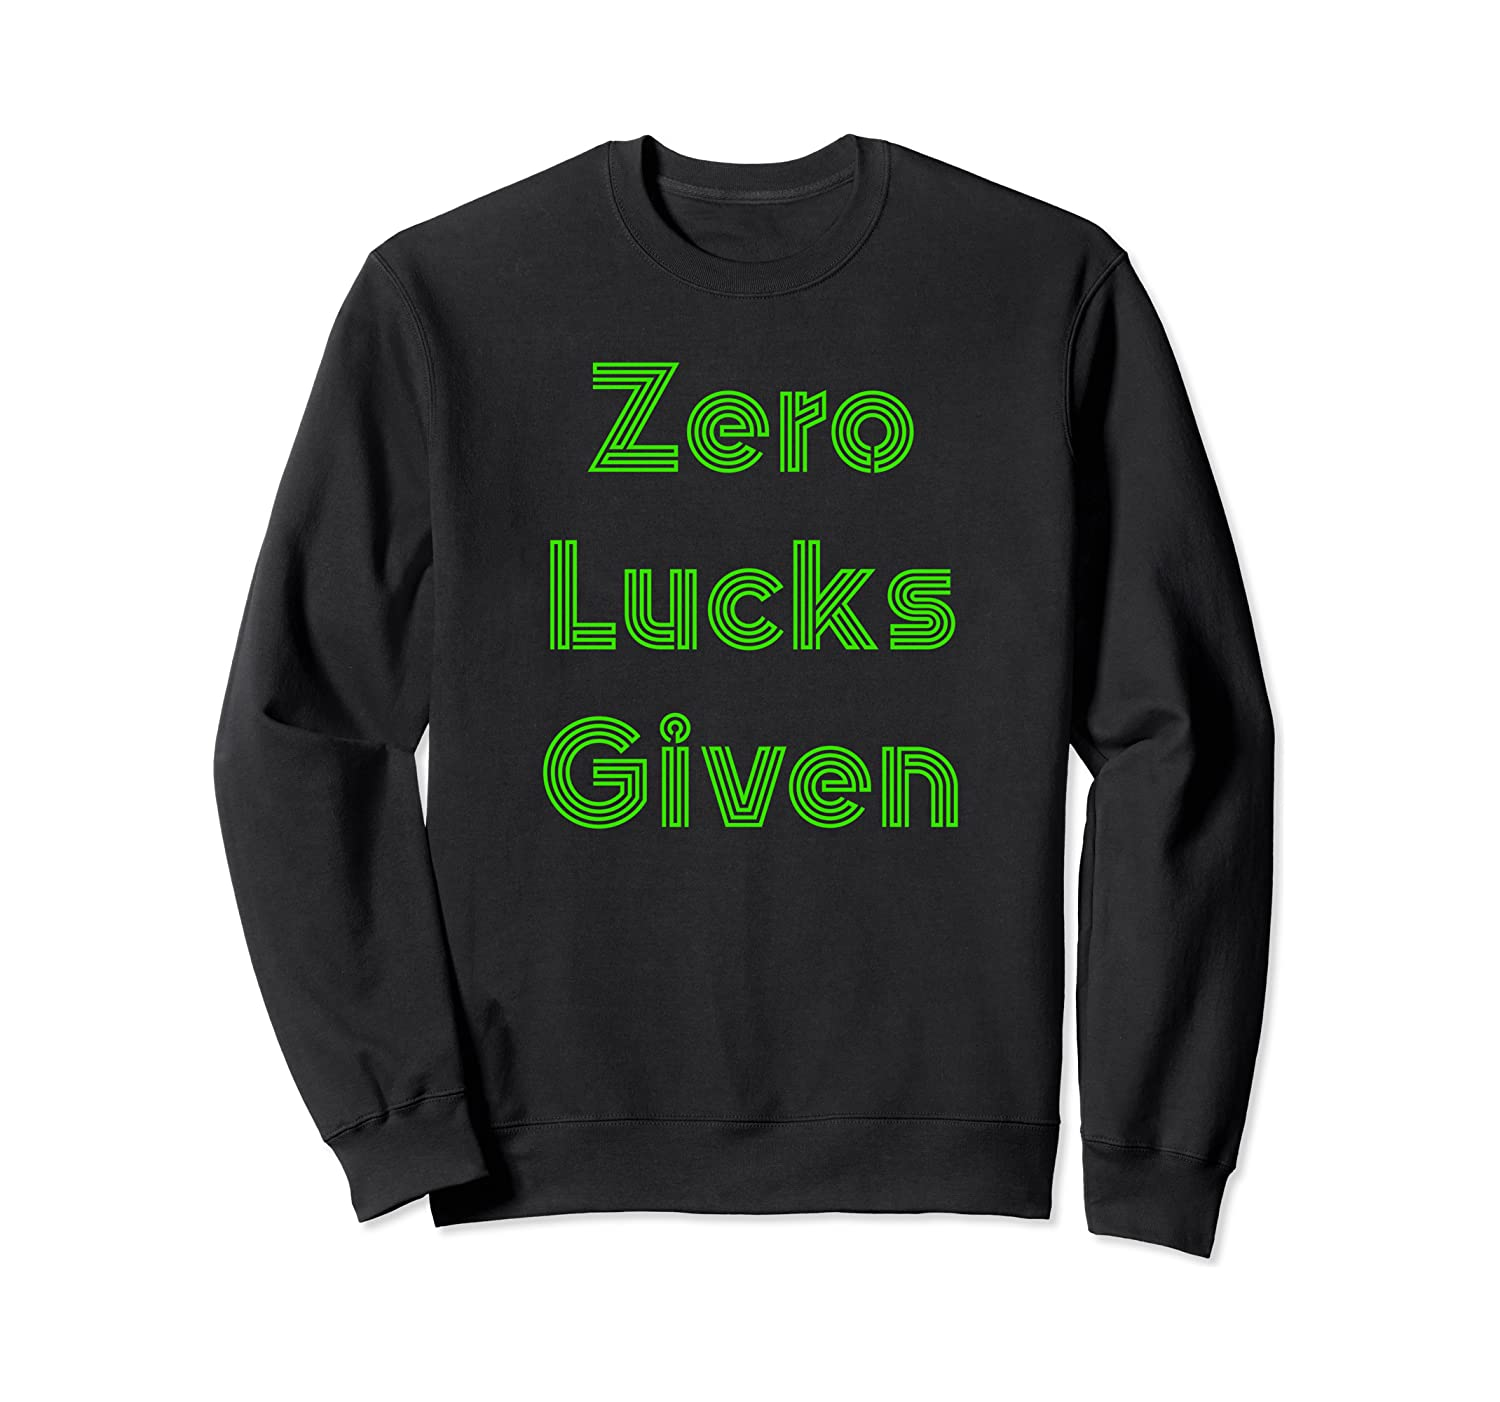 Zero Lucks Given St Patricks Day Green Black Sweatshirt Unisex Tshirt